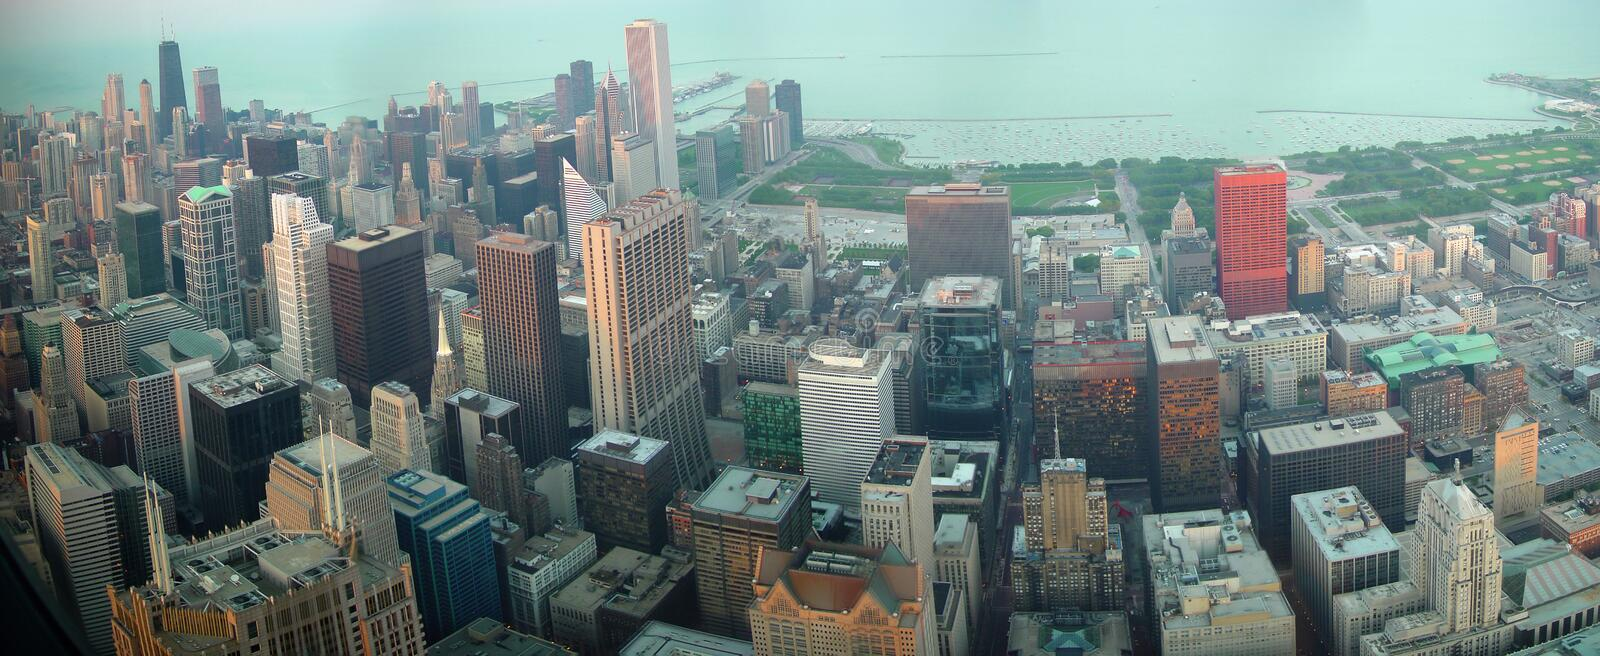 Chicago im Stadtzentrum gelegen von Sears Tower stockfoto